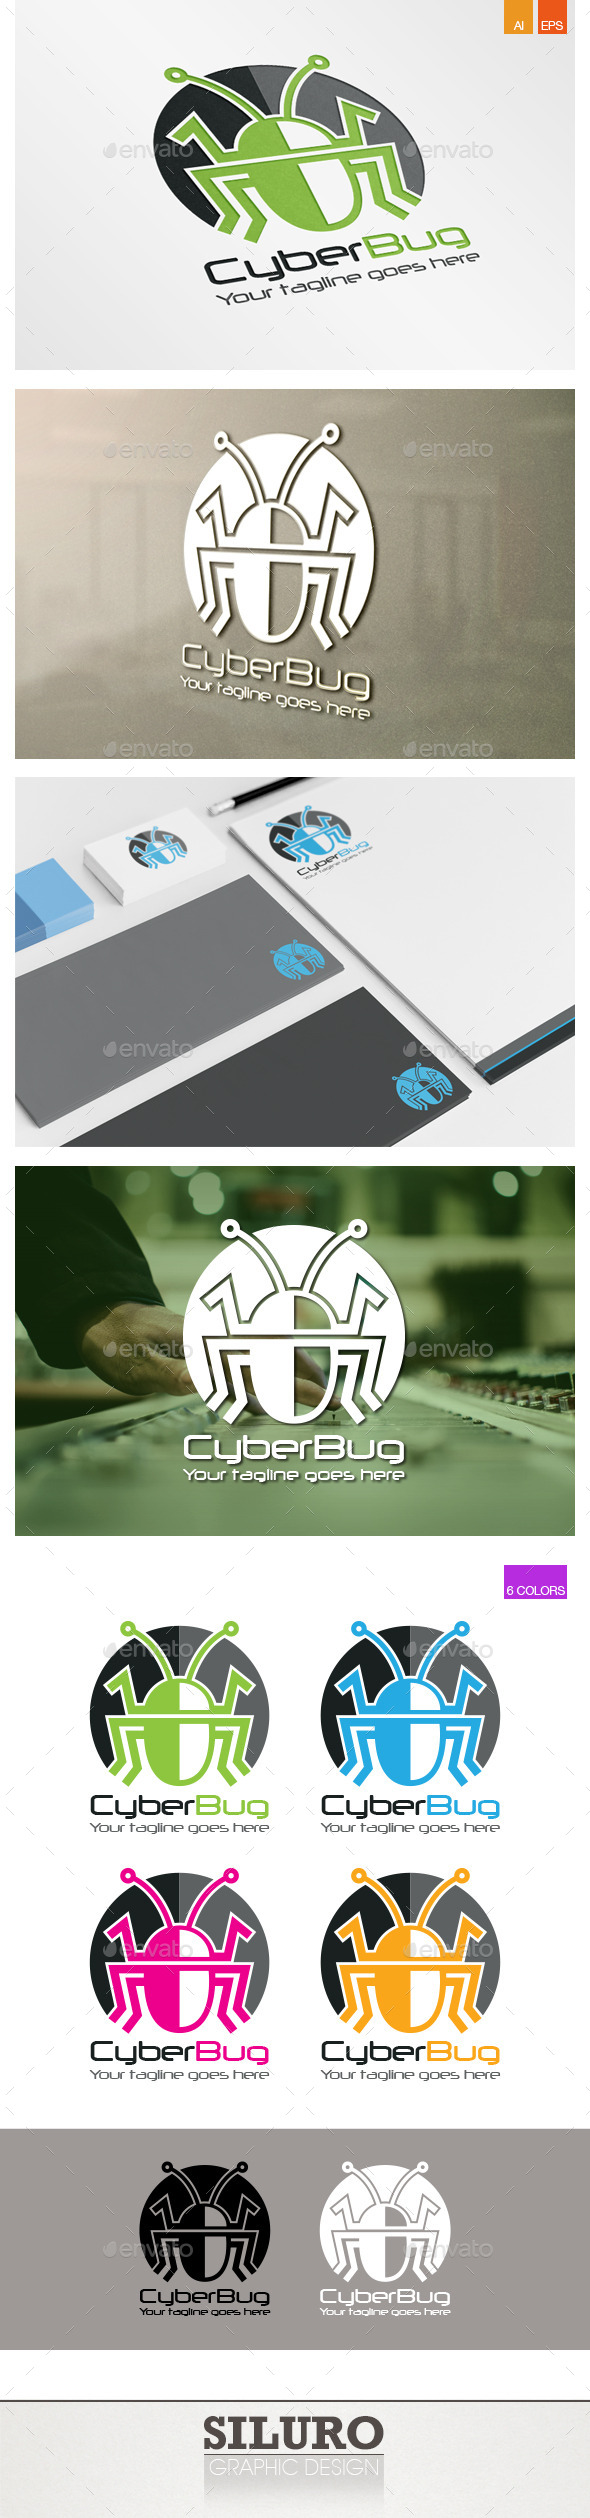 GraphicRiver Cyber Bug Logo 9609096